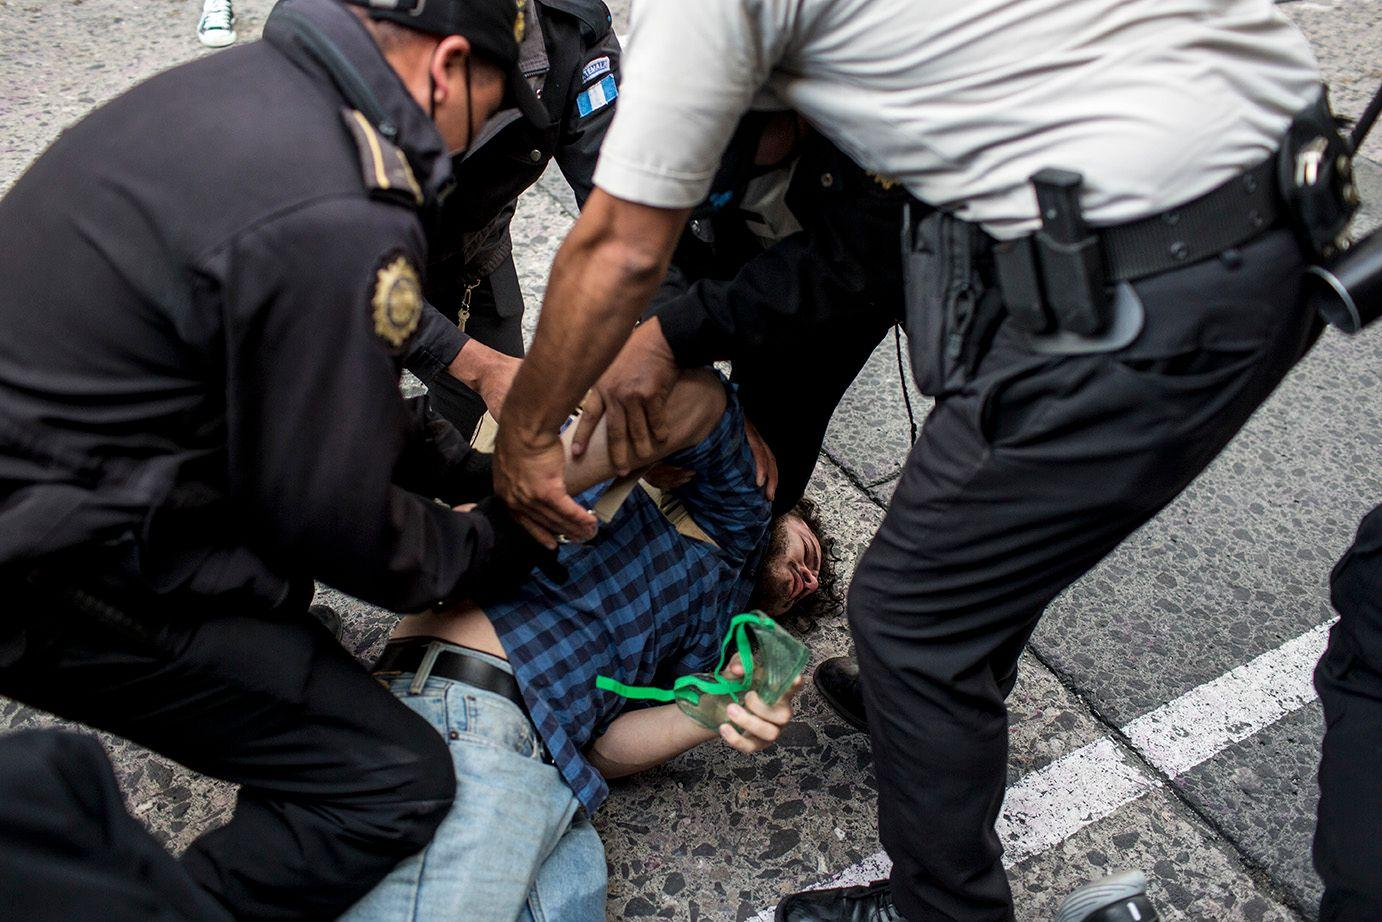 A protester is pinned to the ground by members of the Police. /